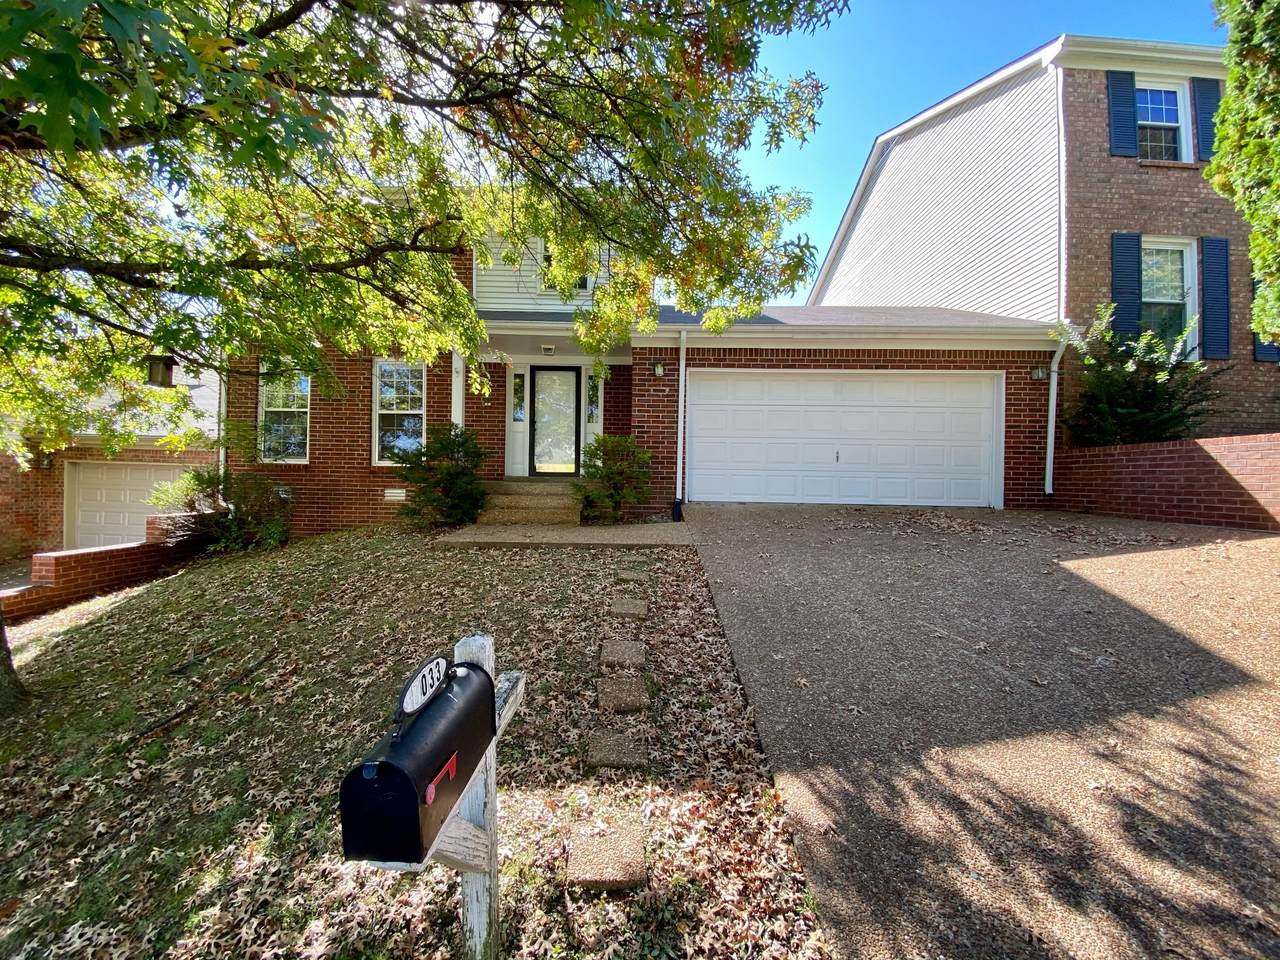 7033 Clearview Cir - Photo 1